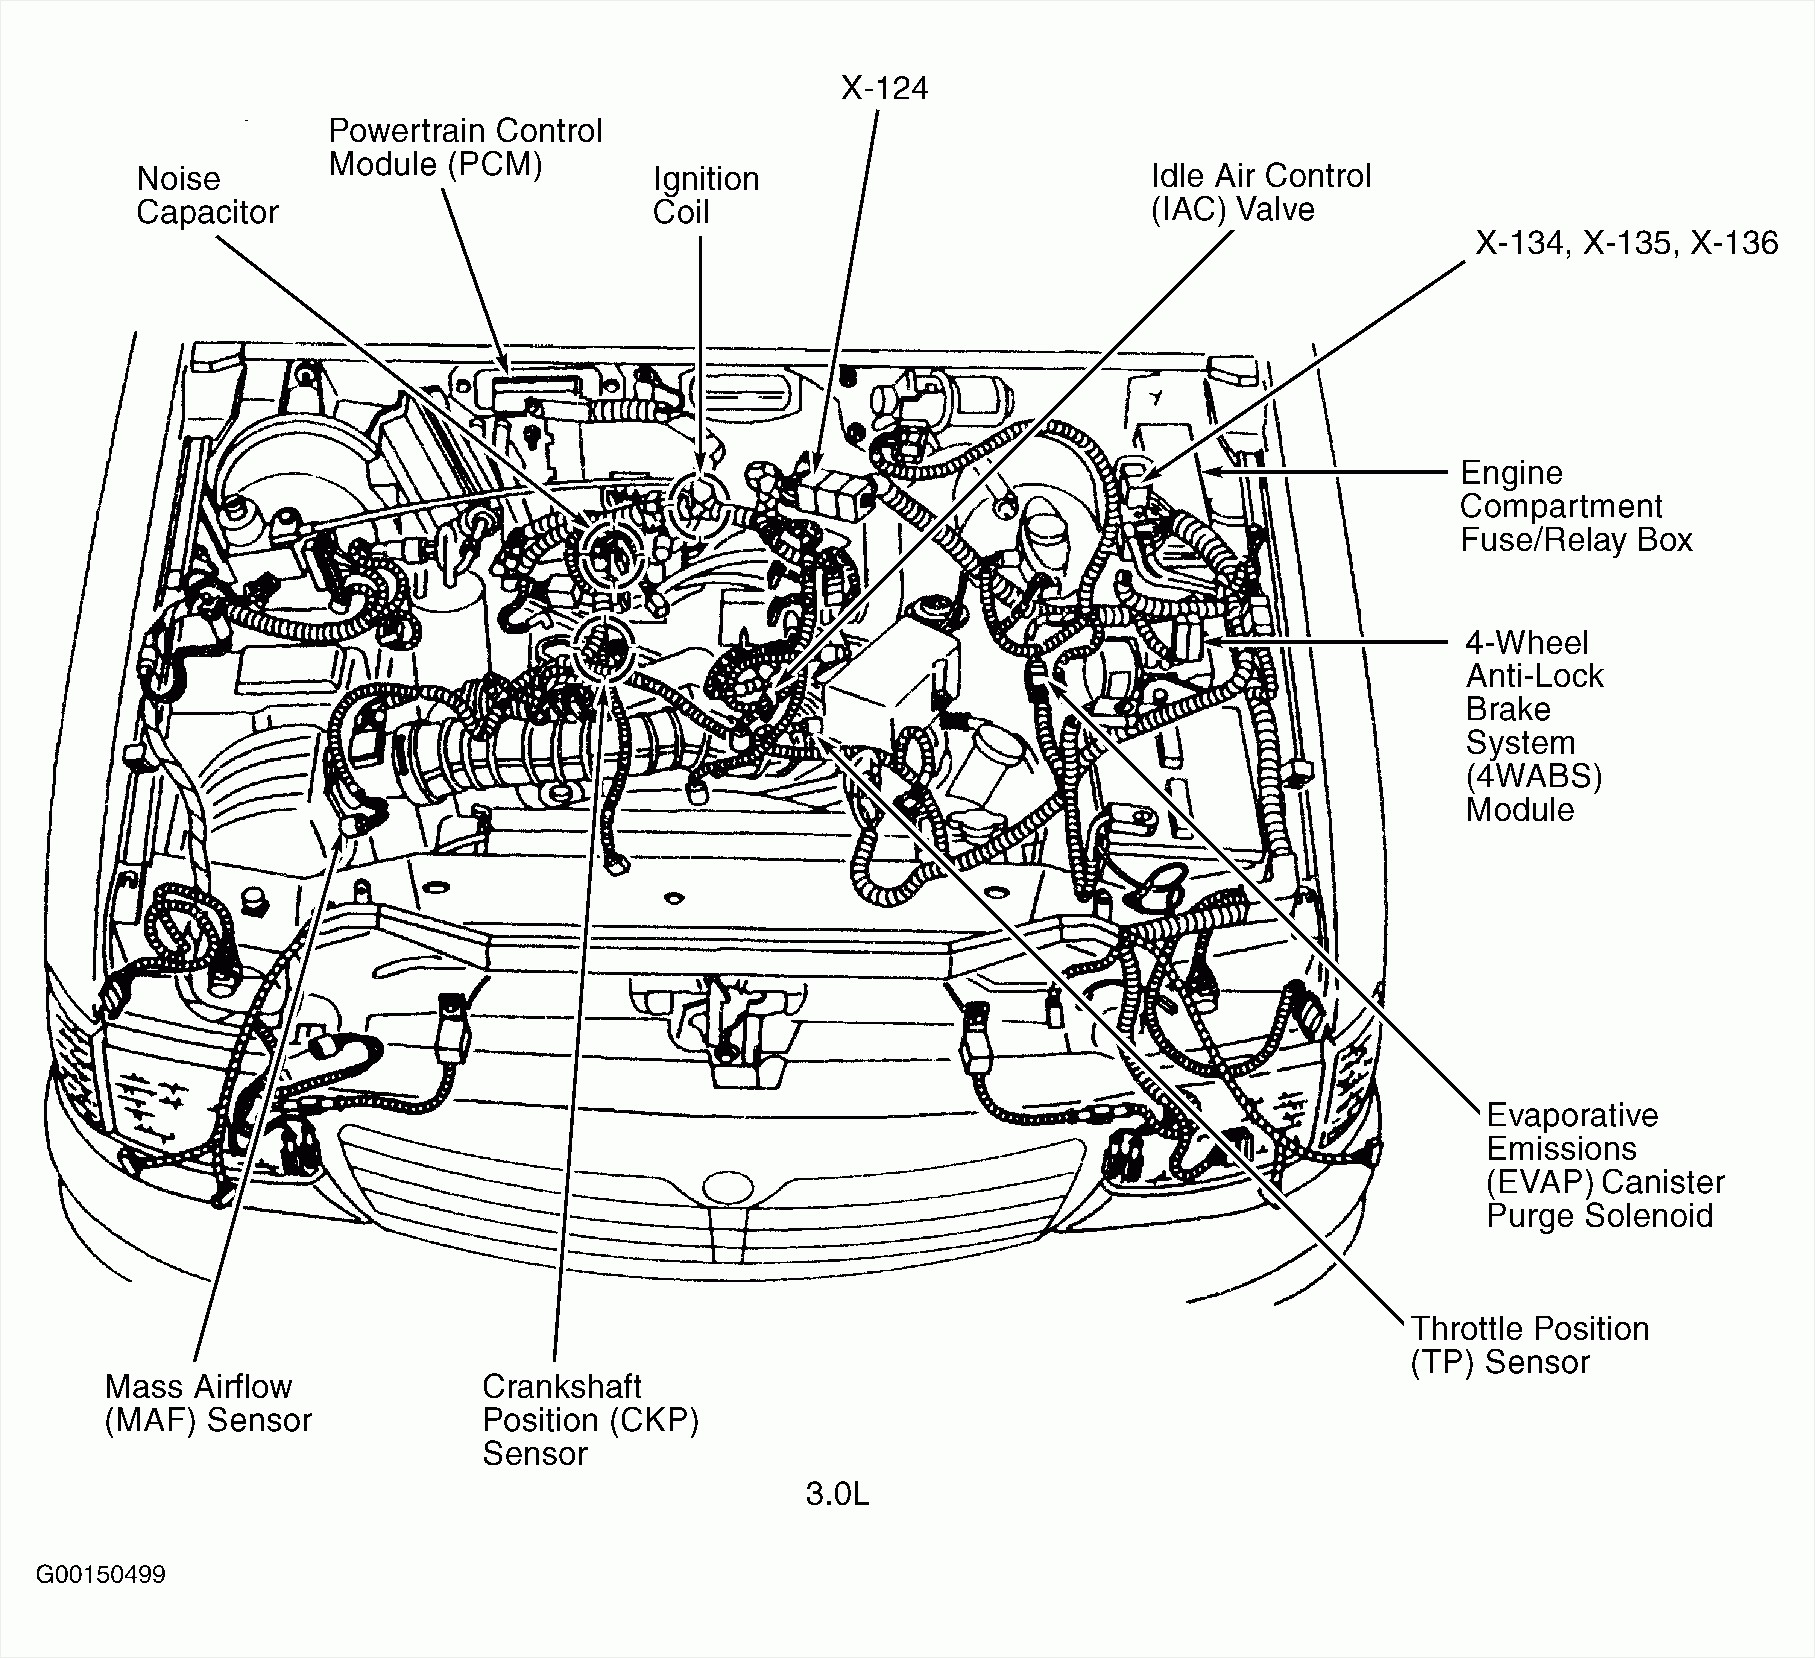 Toyota 3 0 V6 Engine Wiring Diagram on 04 explorer timing chain diagram